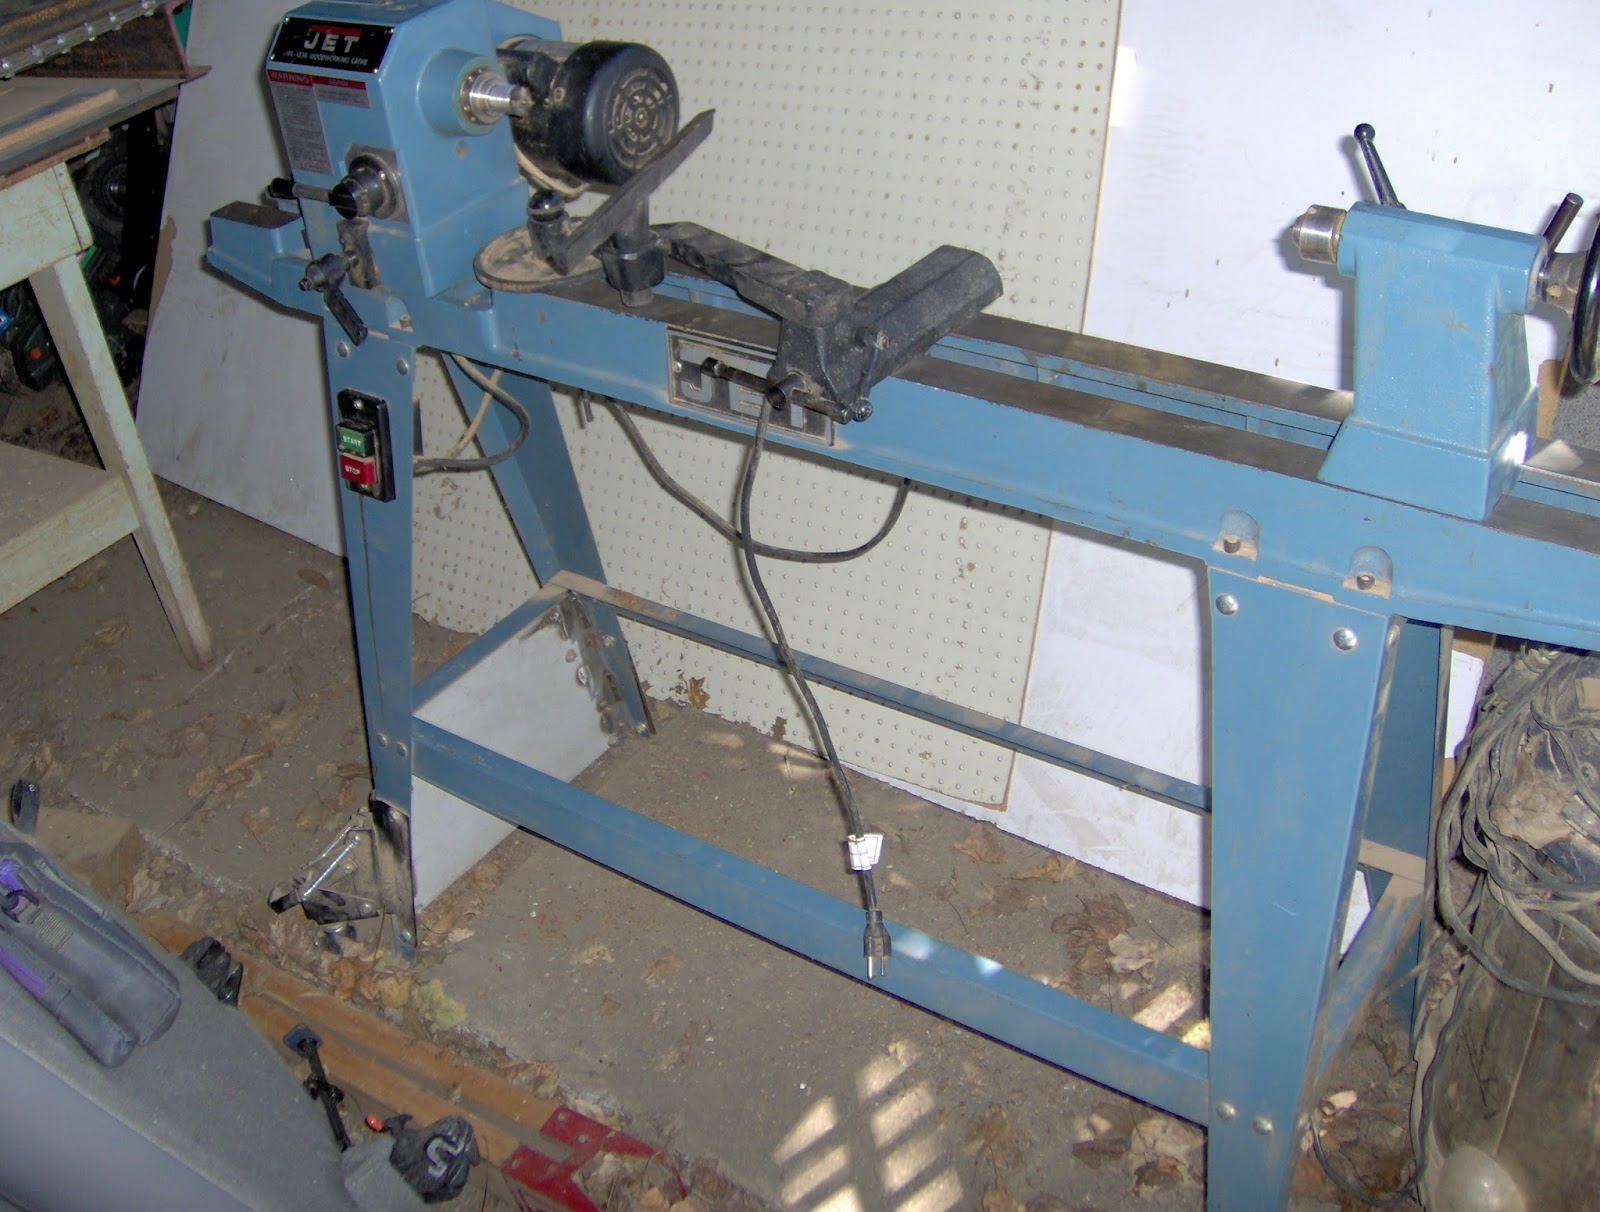 Re Jet 1236 Wood Lathe For Sale 300 00 25 Percent Of